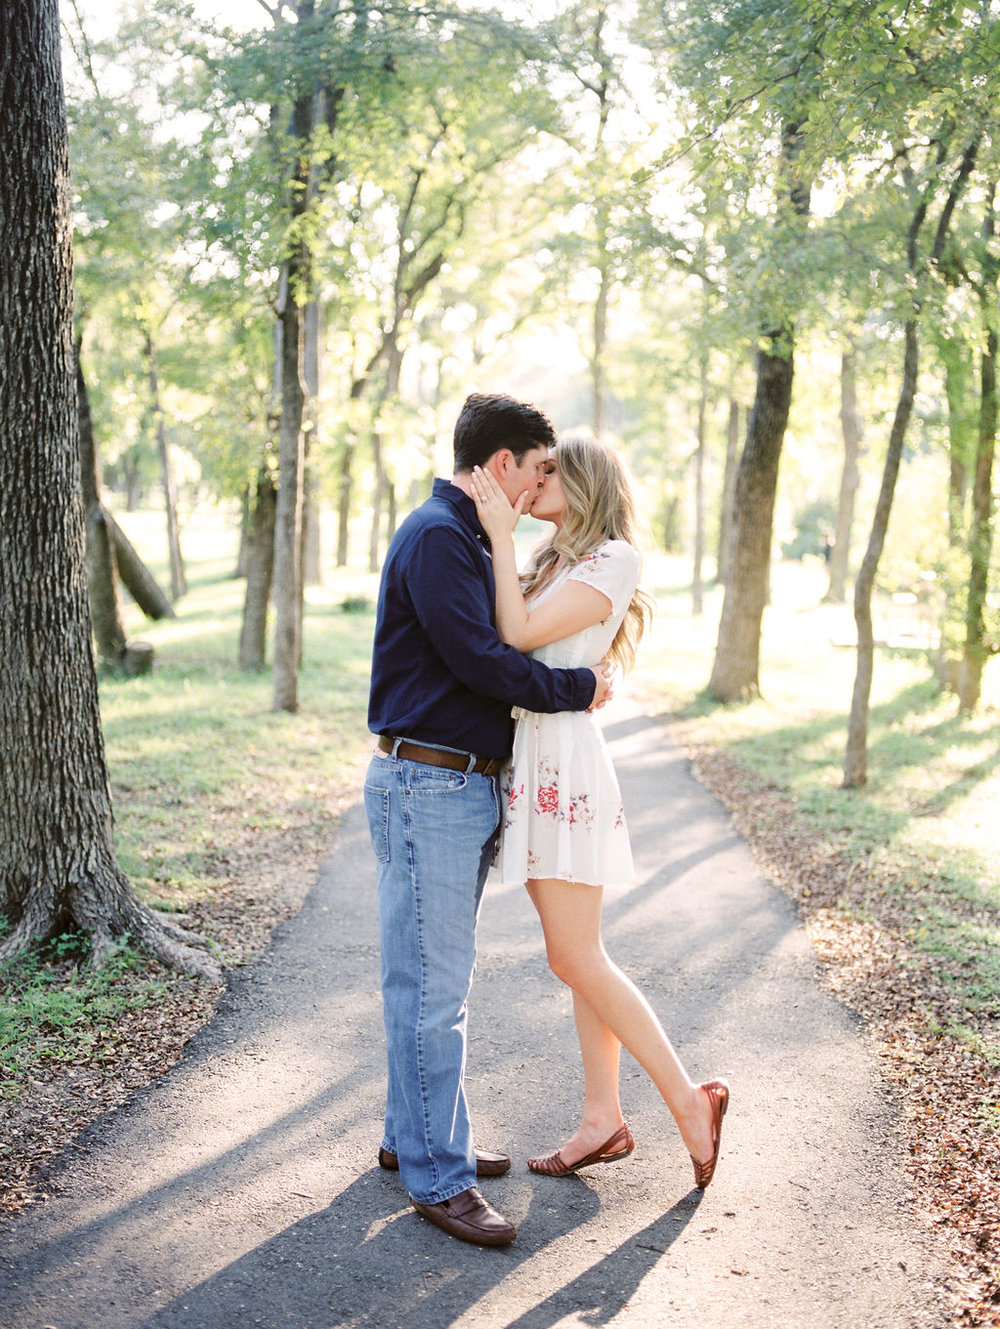 Austin-Film-Wedding-Engagement-Photographer-McKinney-Falls-10.jpg